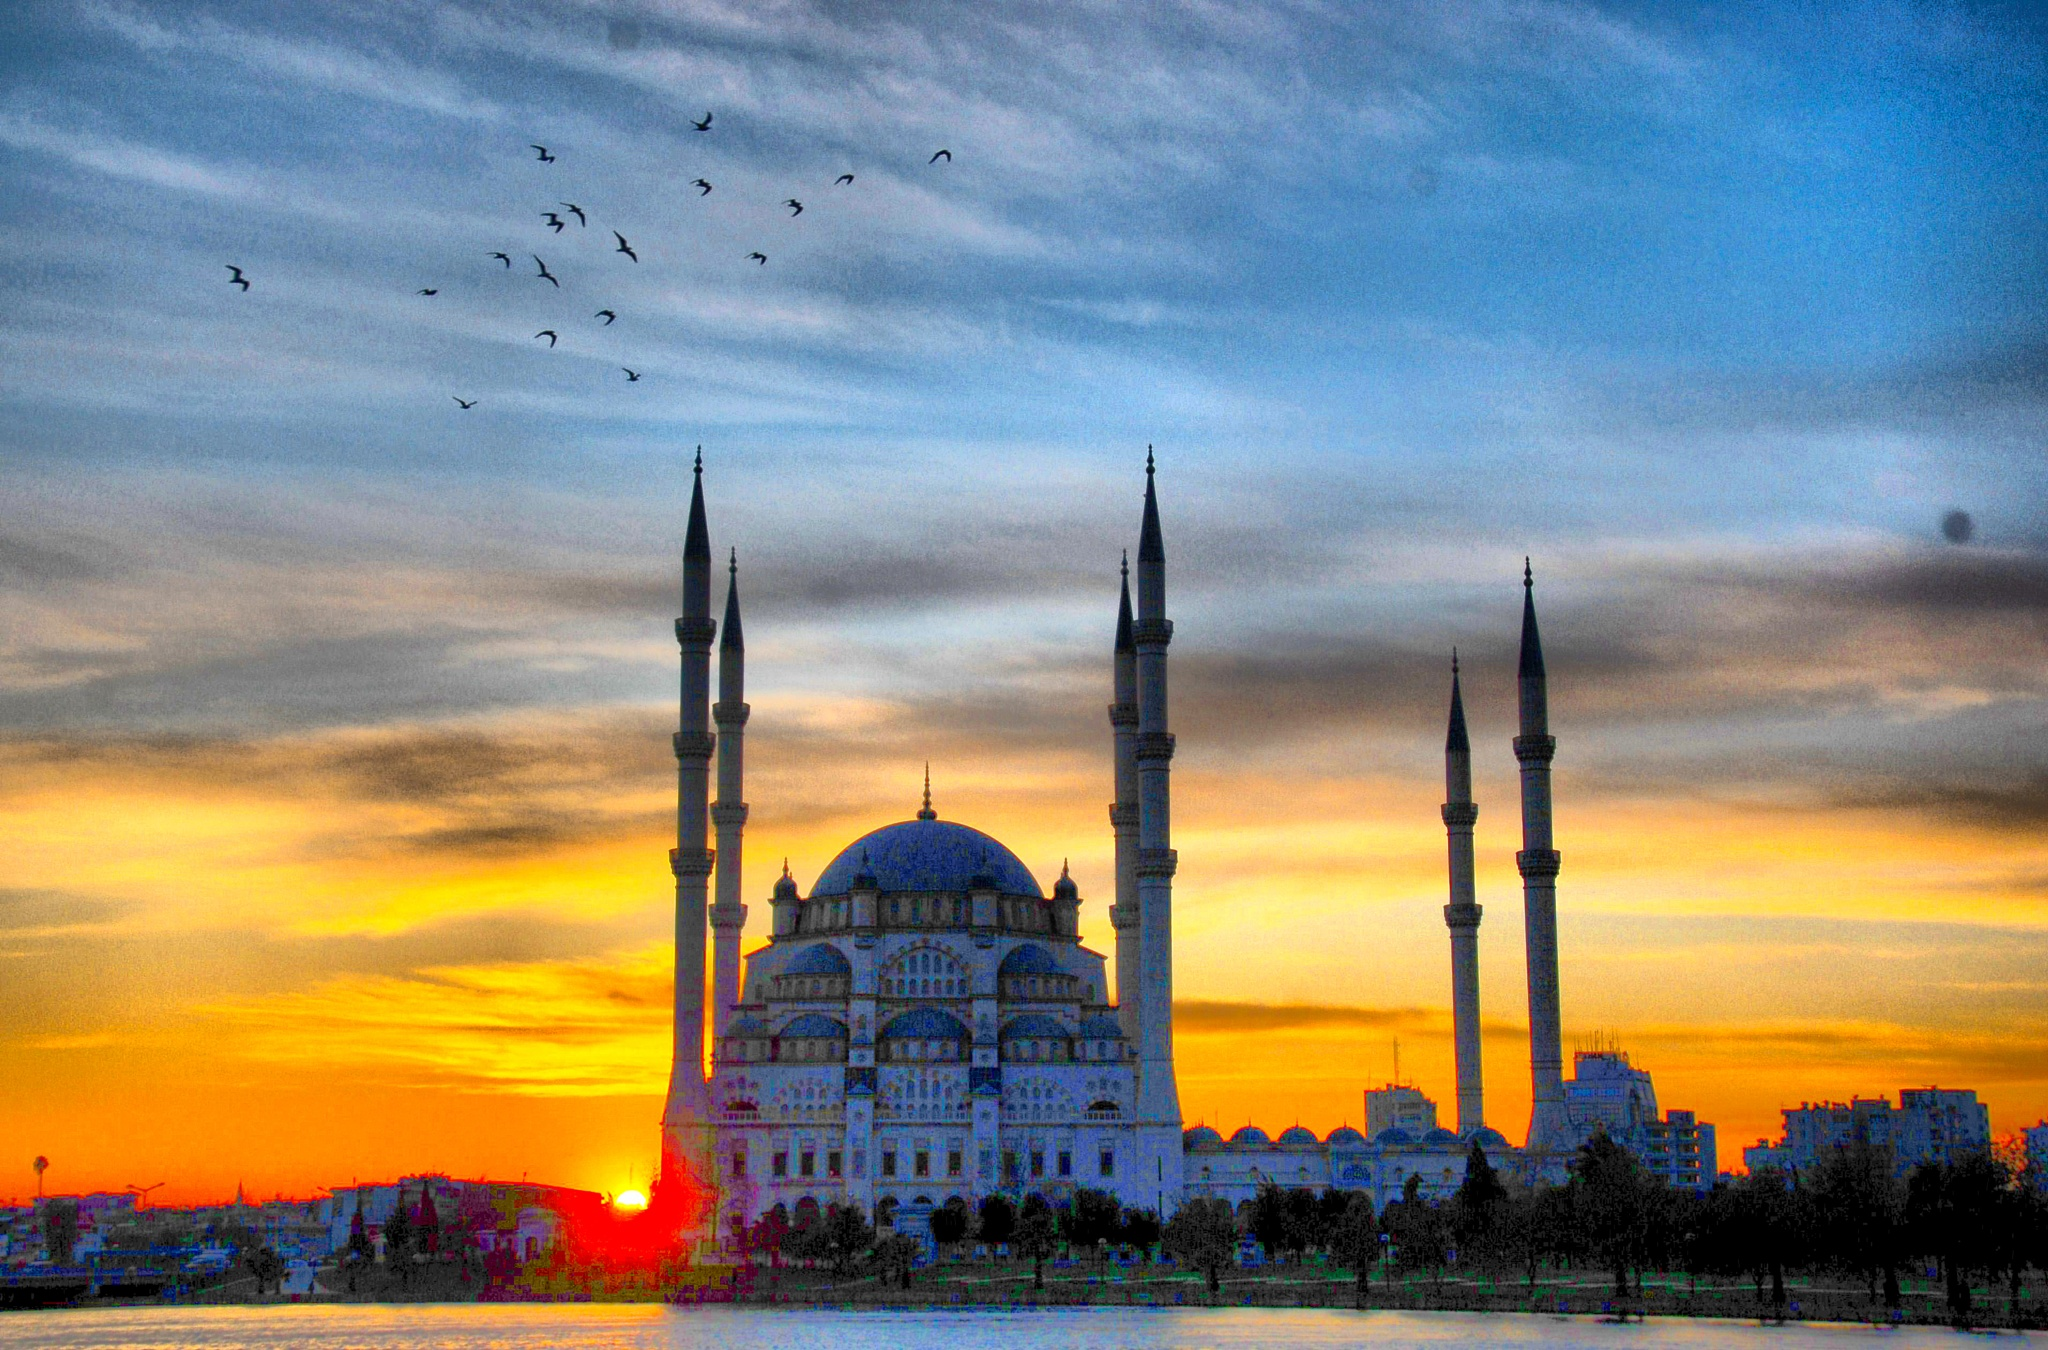 Sunset and Sabanci Mosque by kebabman